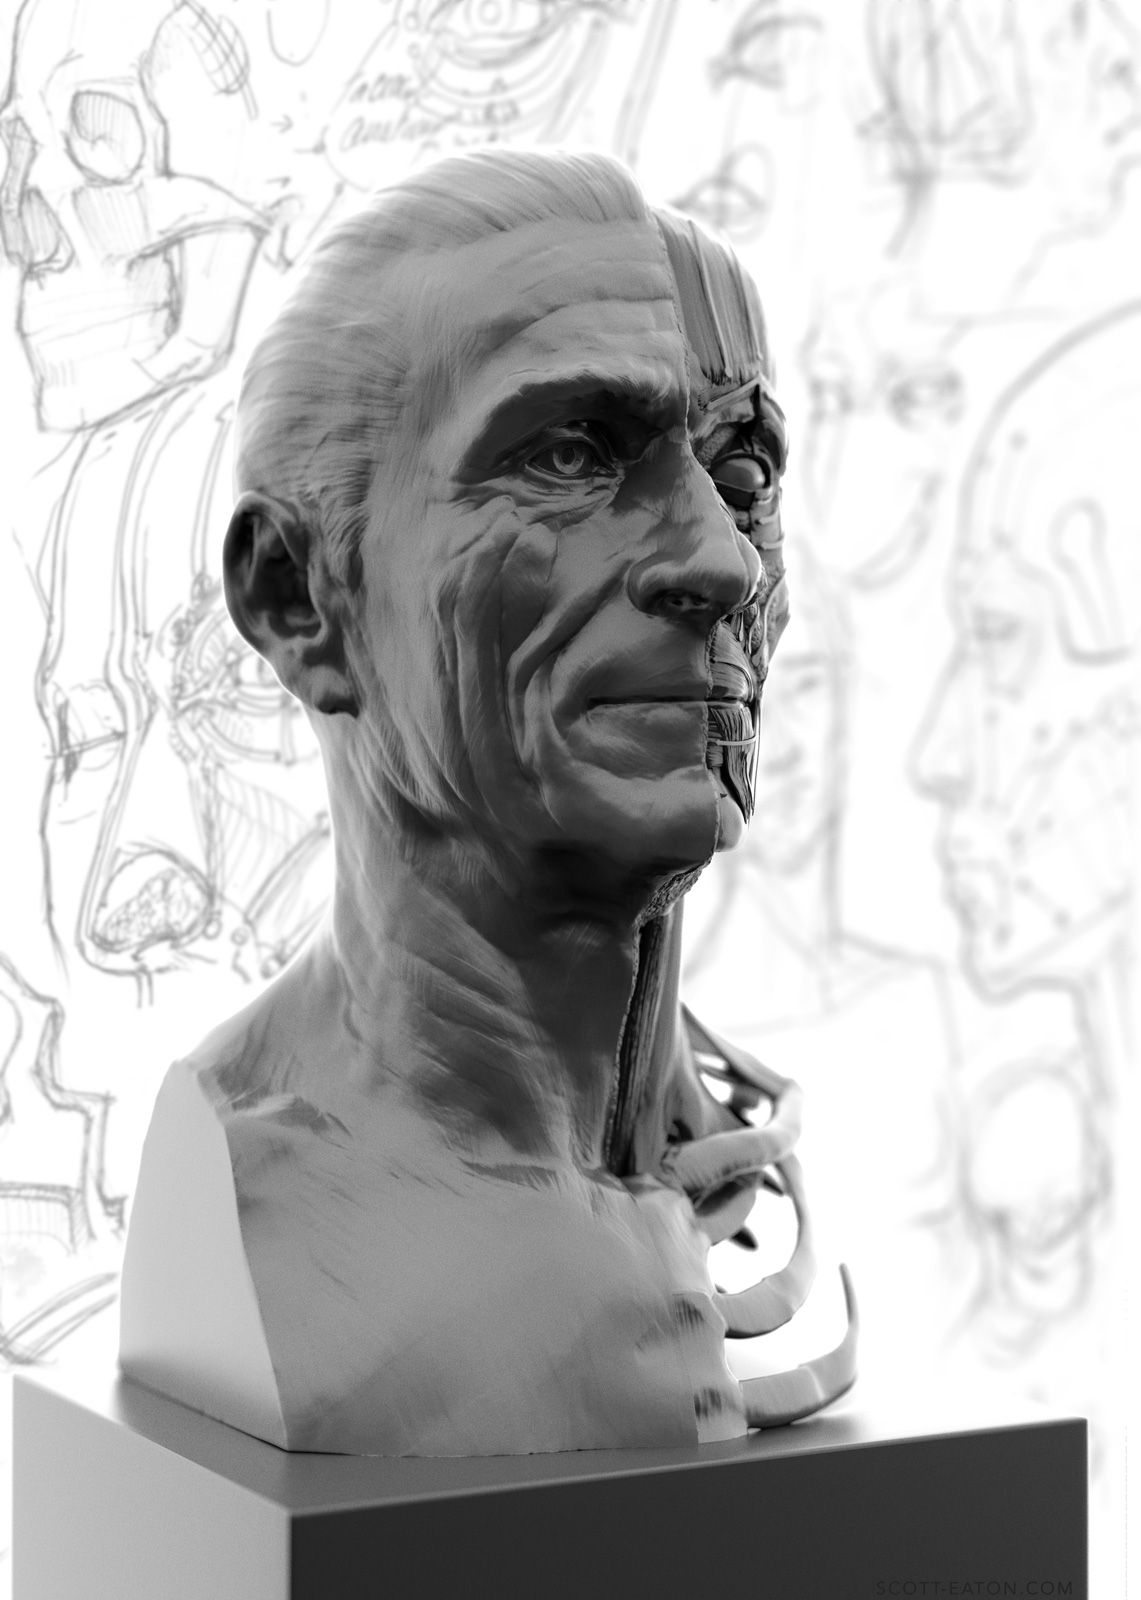 Portrait Side Of The Ecorche Study Relates The Underlying Facial